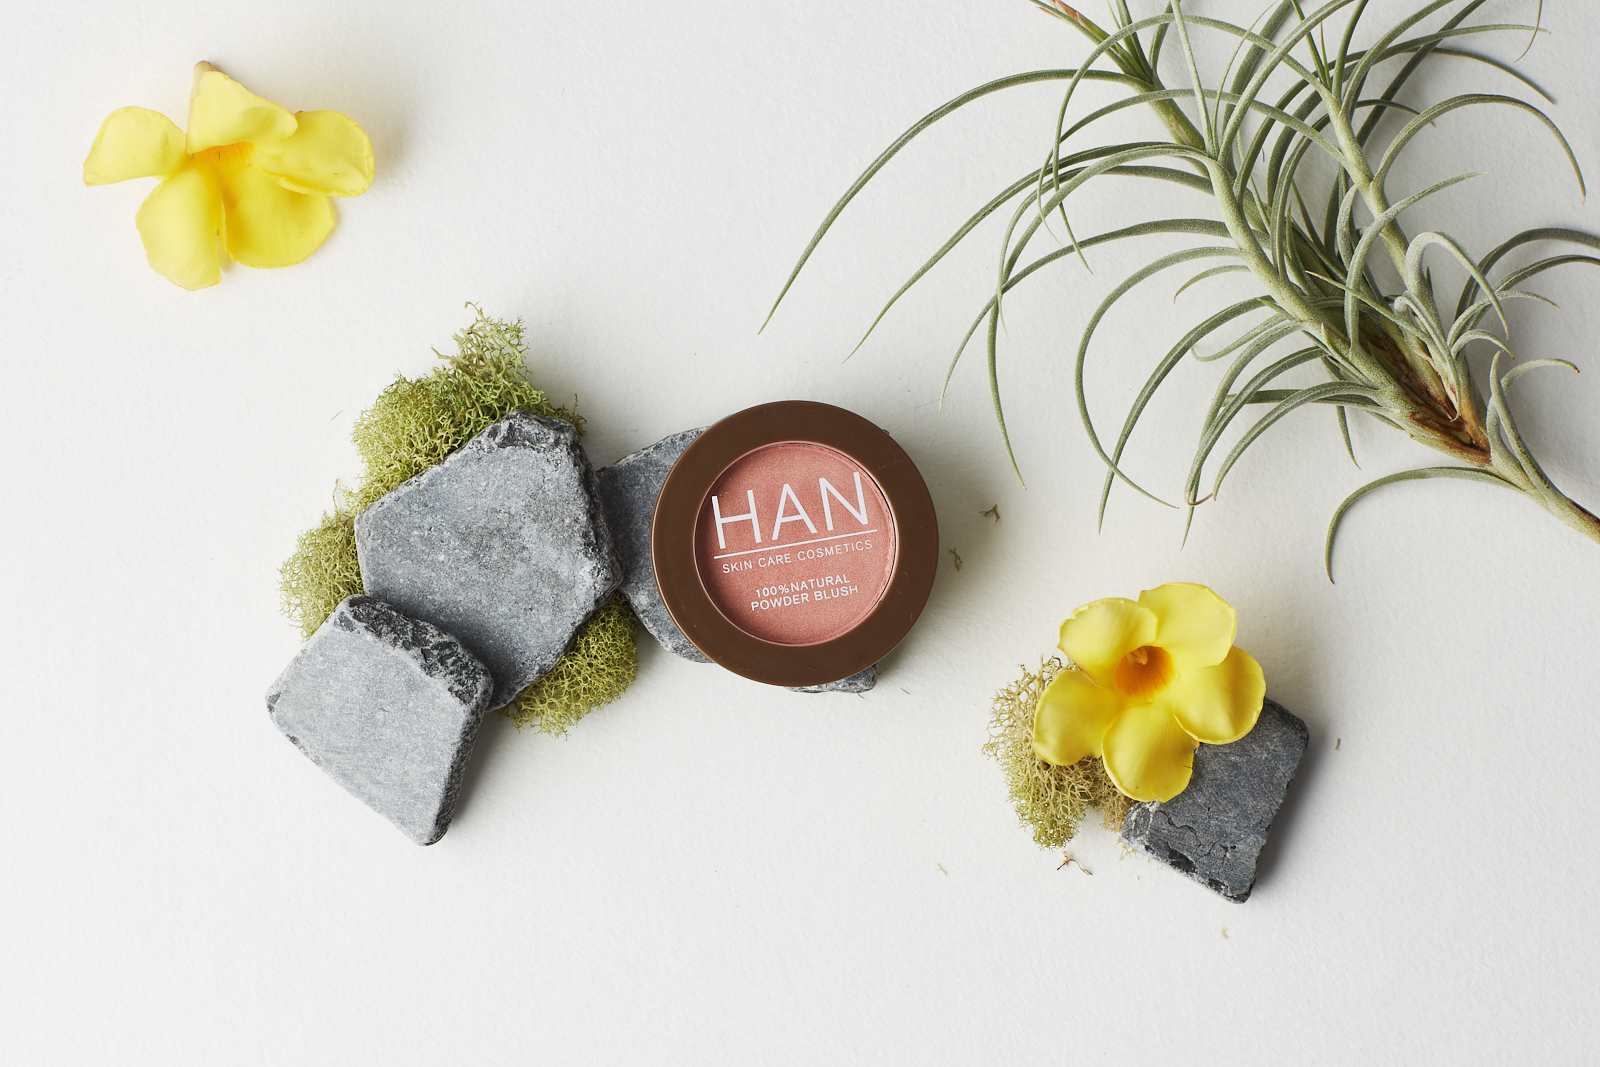 HAN Skin Care Cosmetics Pressed Blush in Coral Candy Swatch